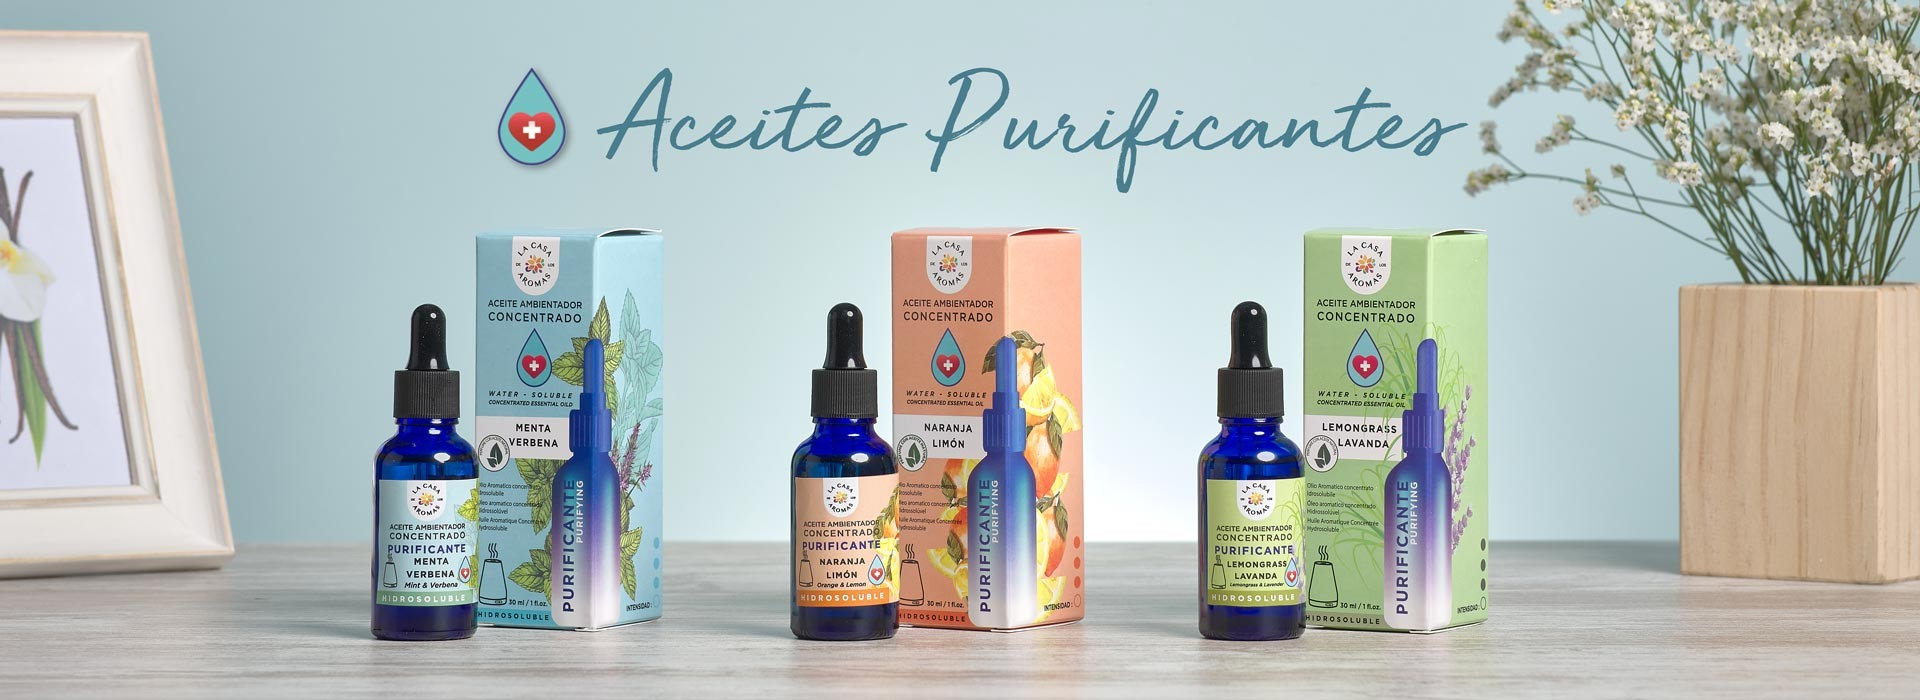 Aceites Purificantes